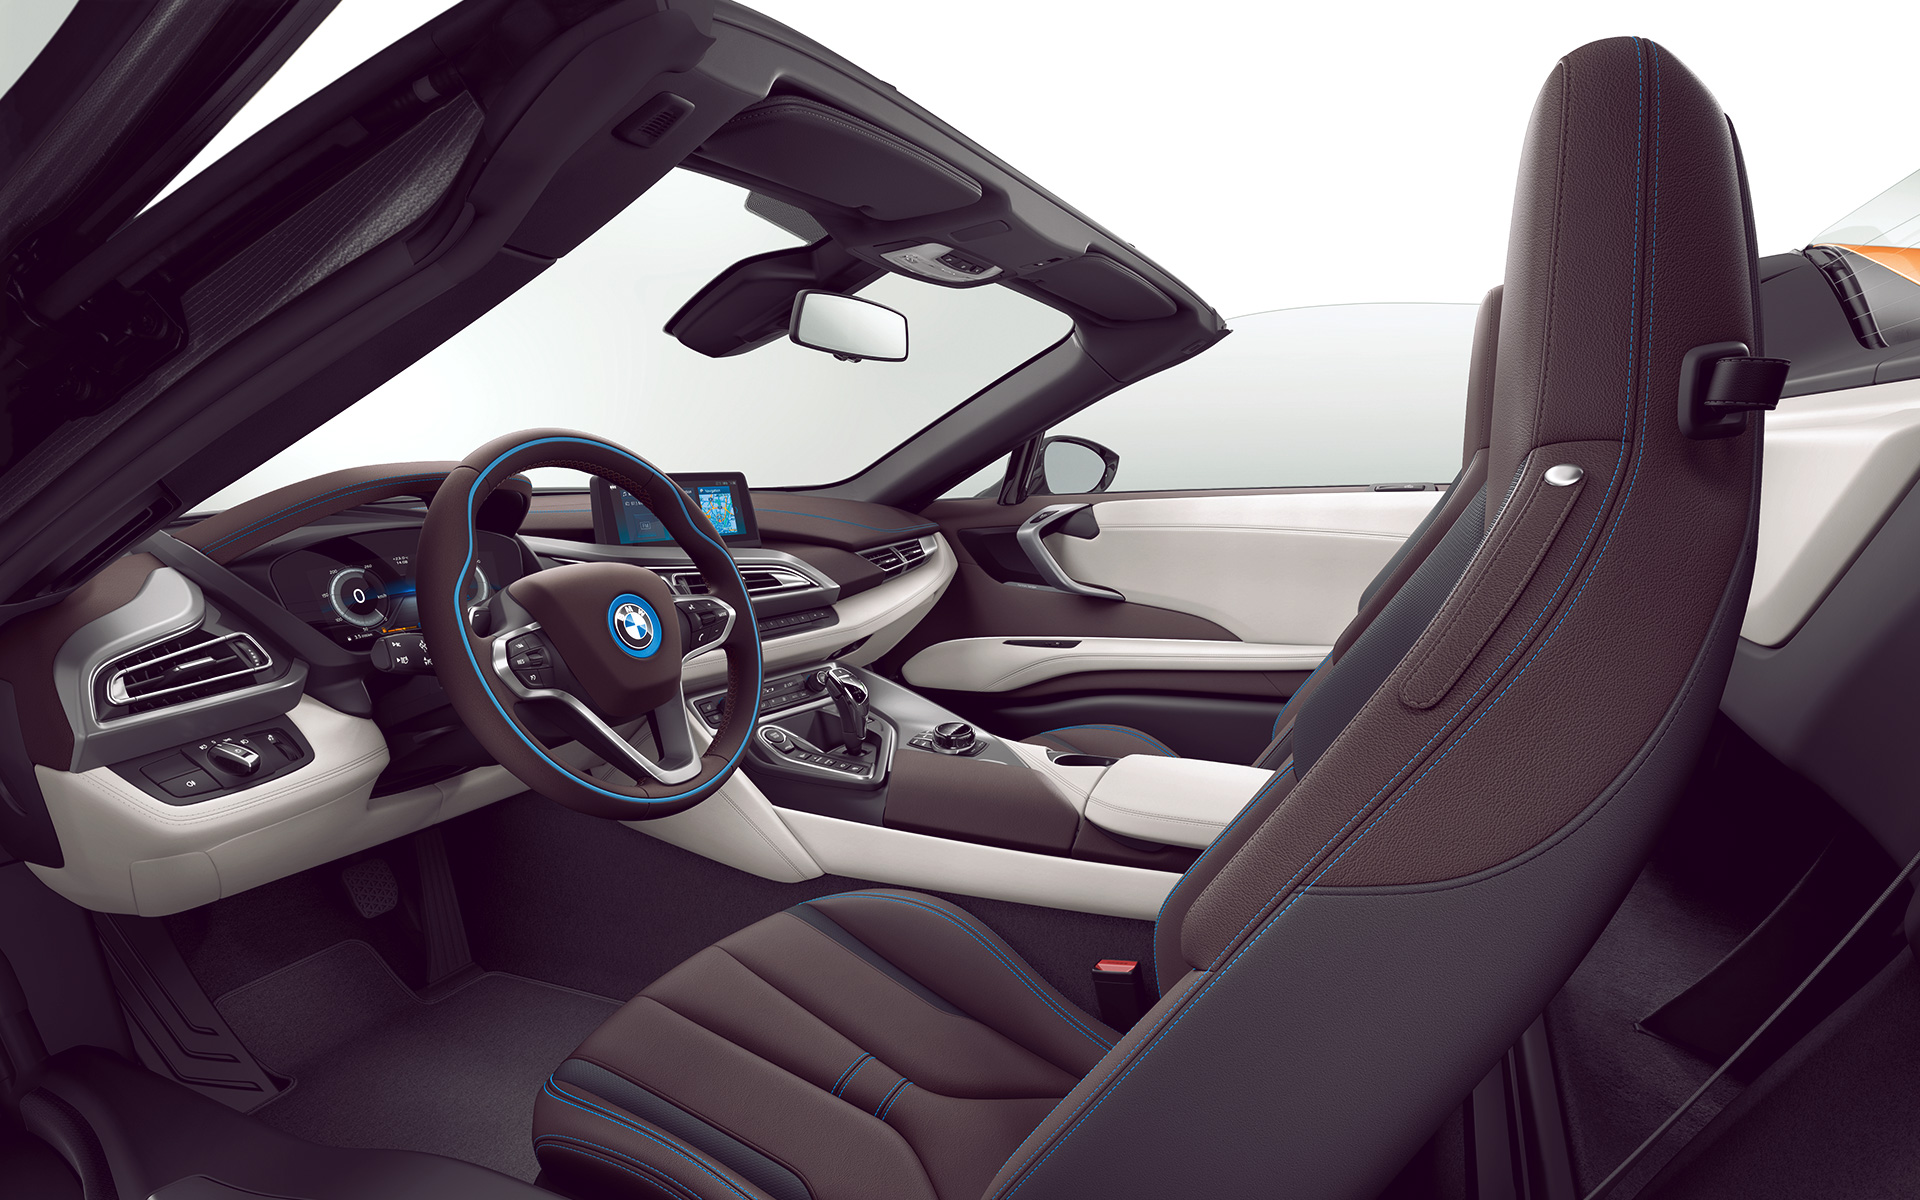 bmw i8 i8roadster home gallery lines 04 dalbergia brown I15